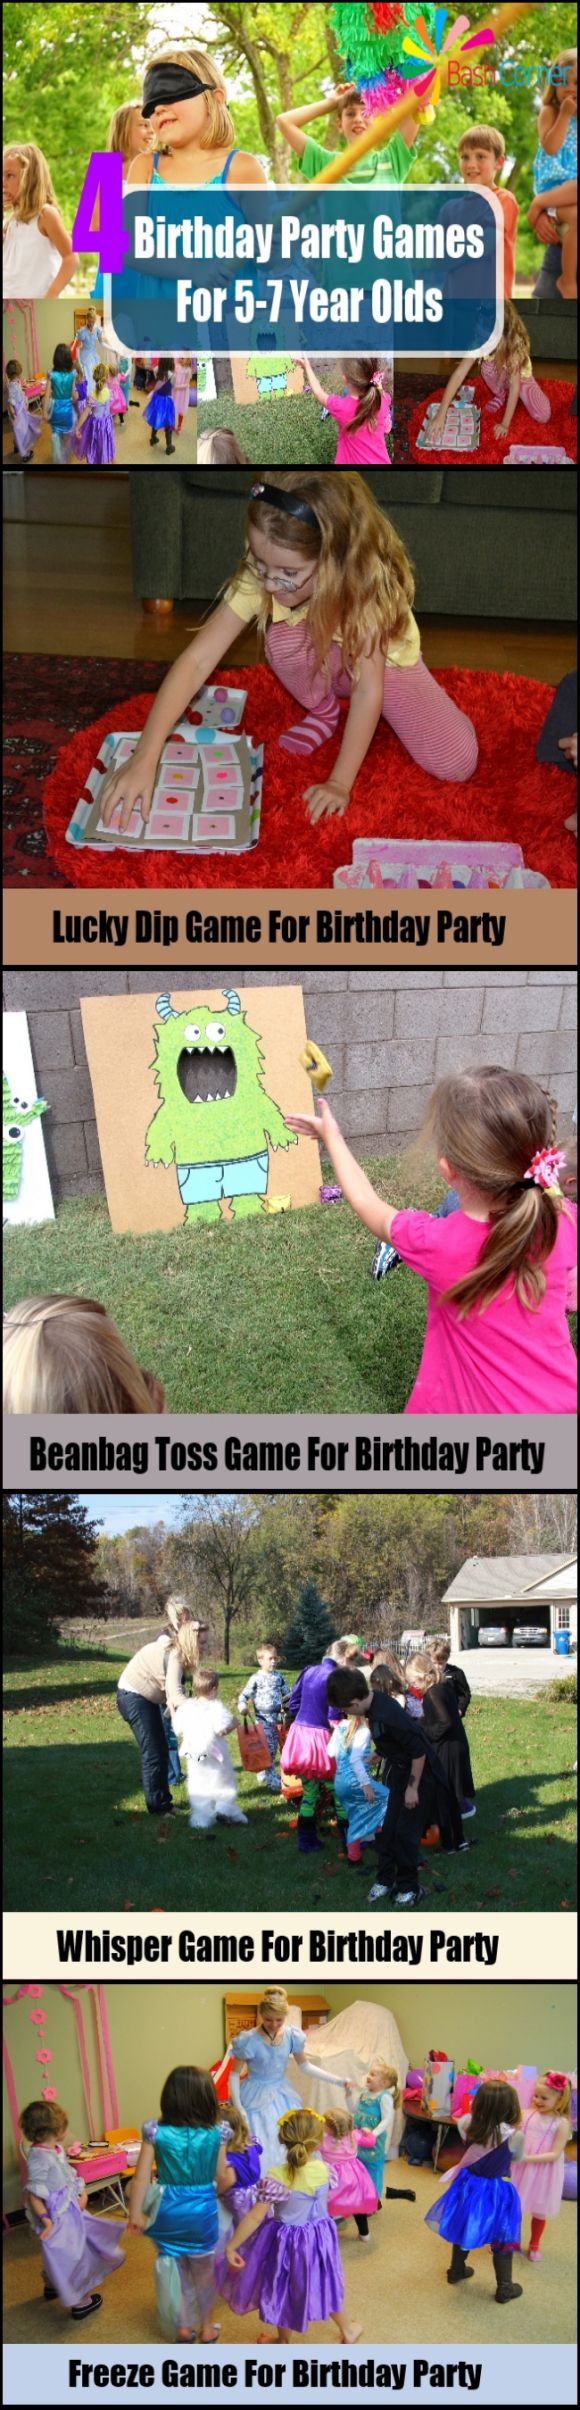 Party Games For 5-7 Year Olds